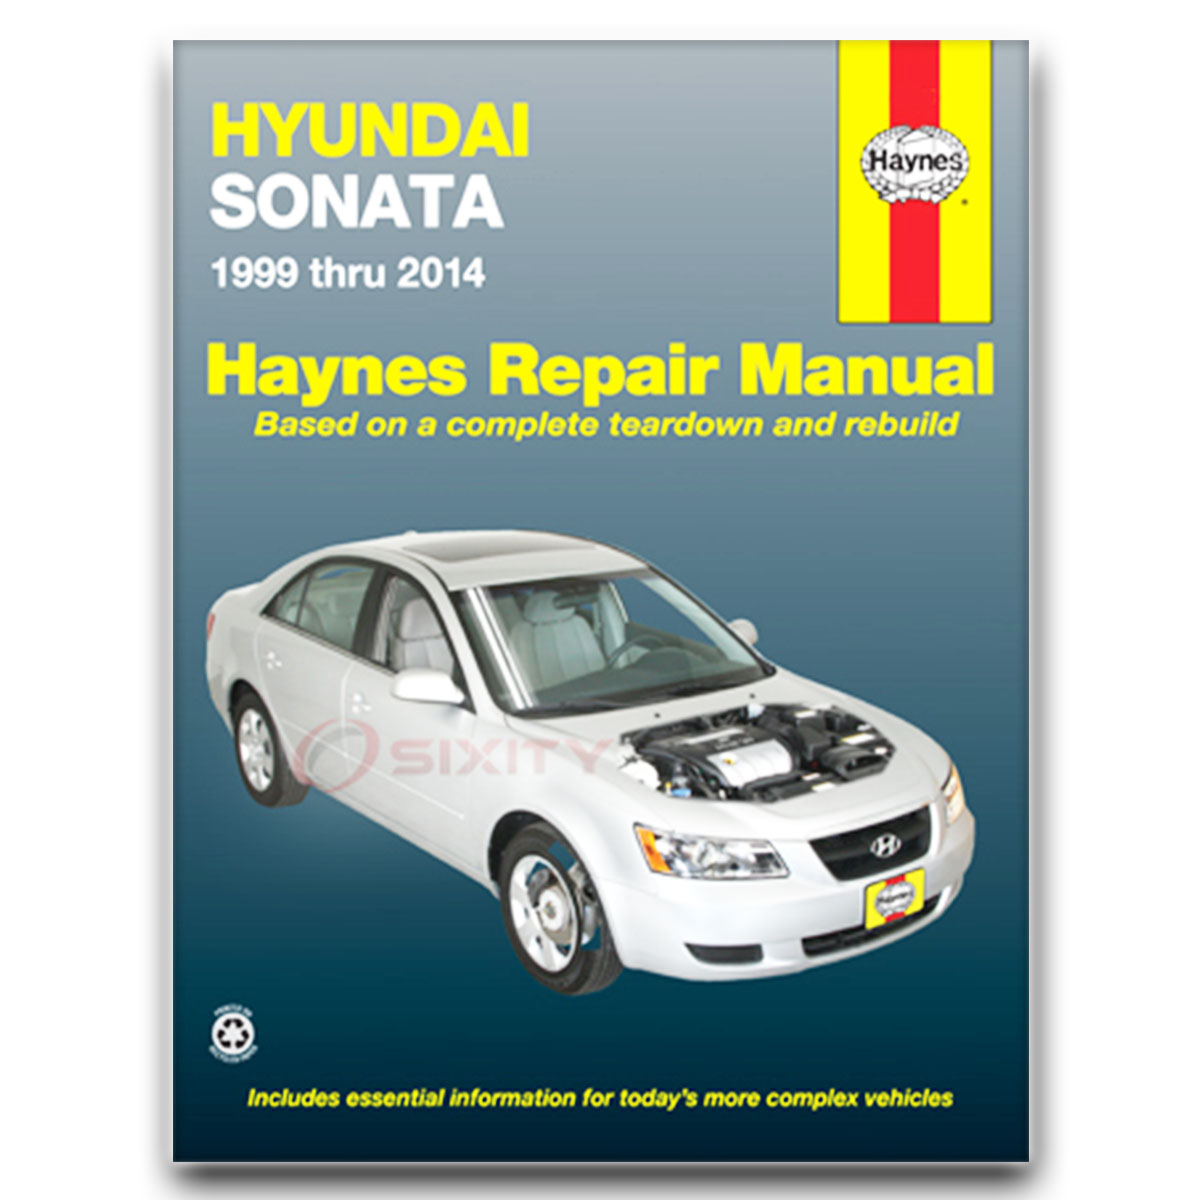 Haynes Repair Manual 43055 for Hyundai Sonata 99-08 Shop Service Garage  Book vz